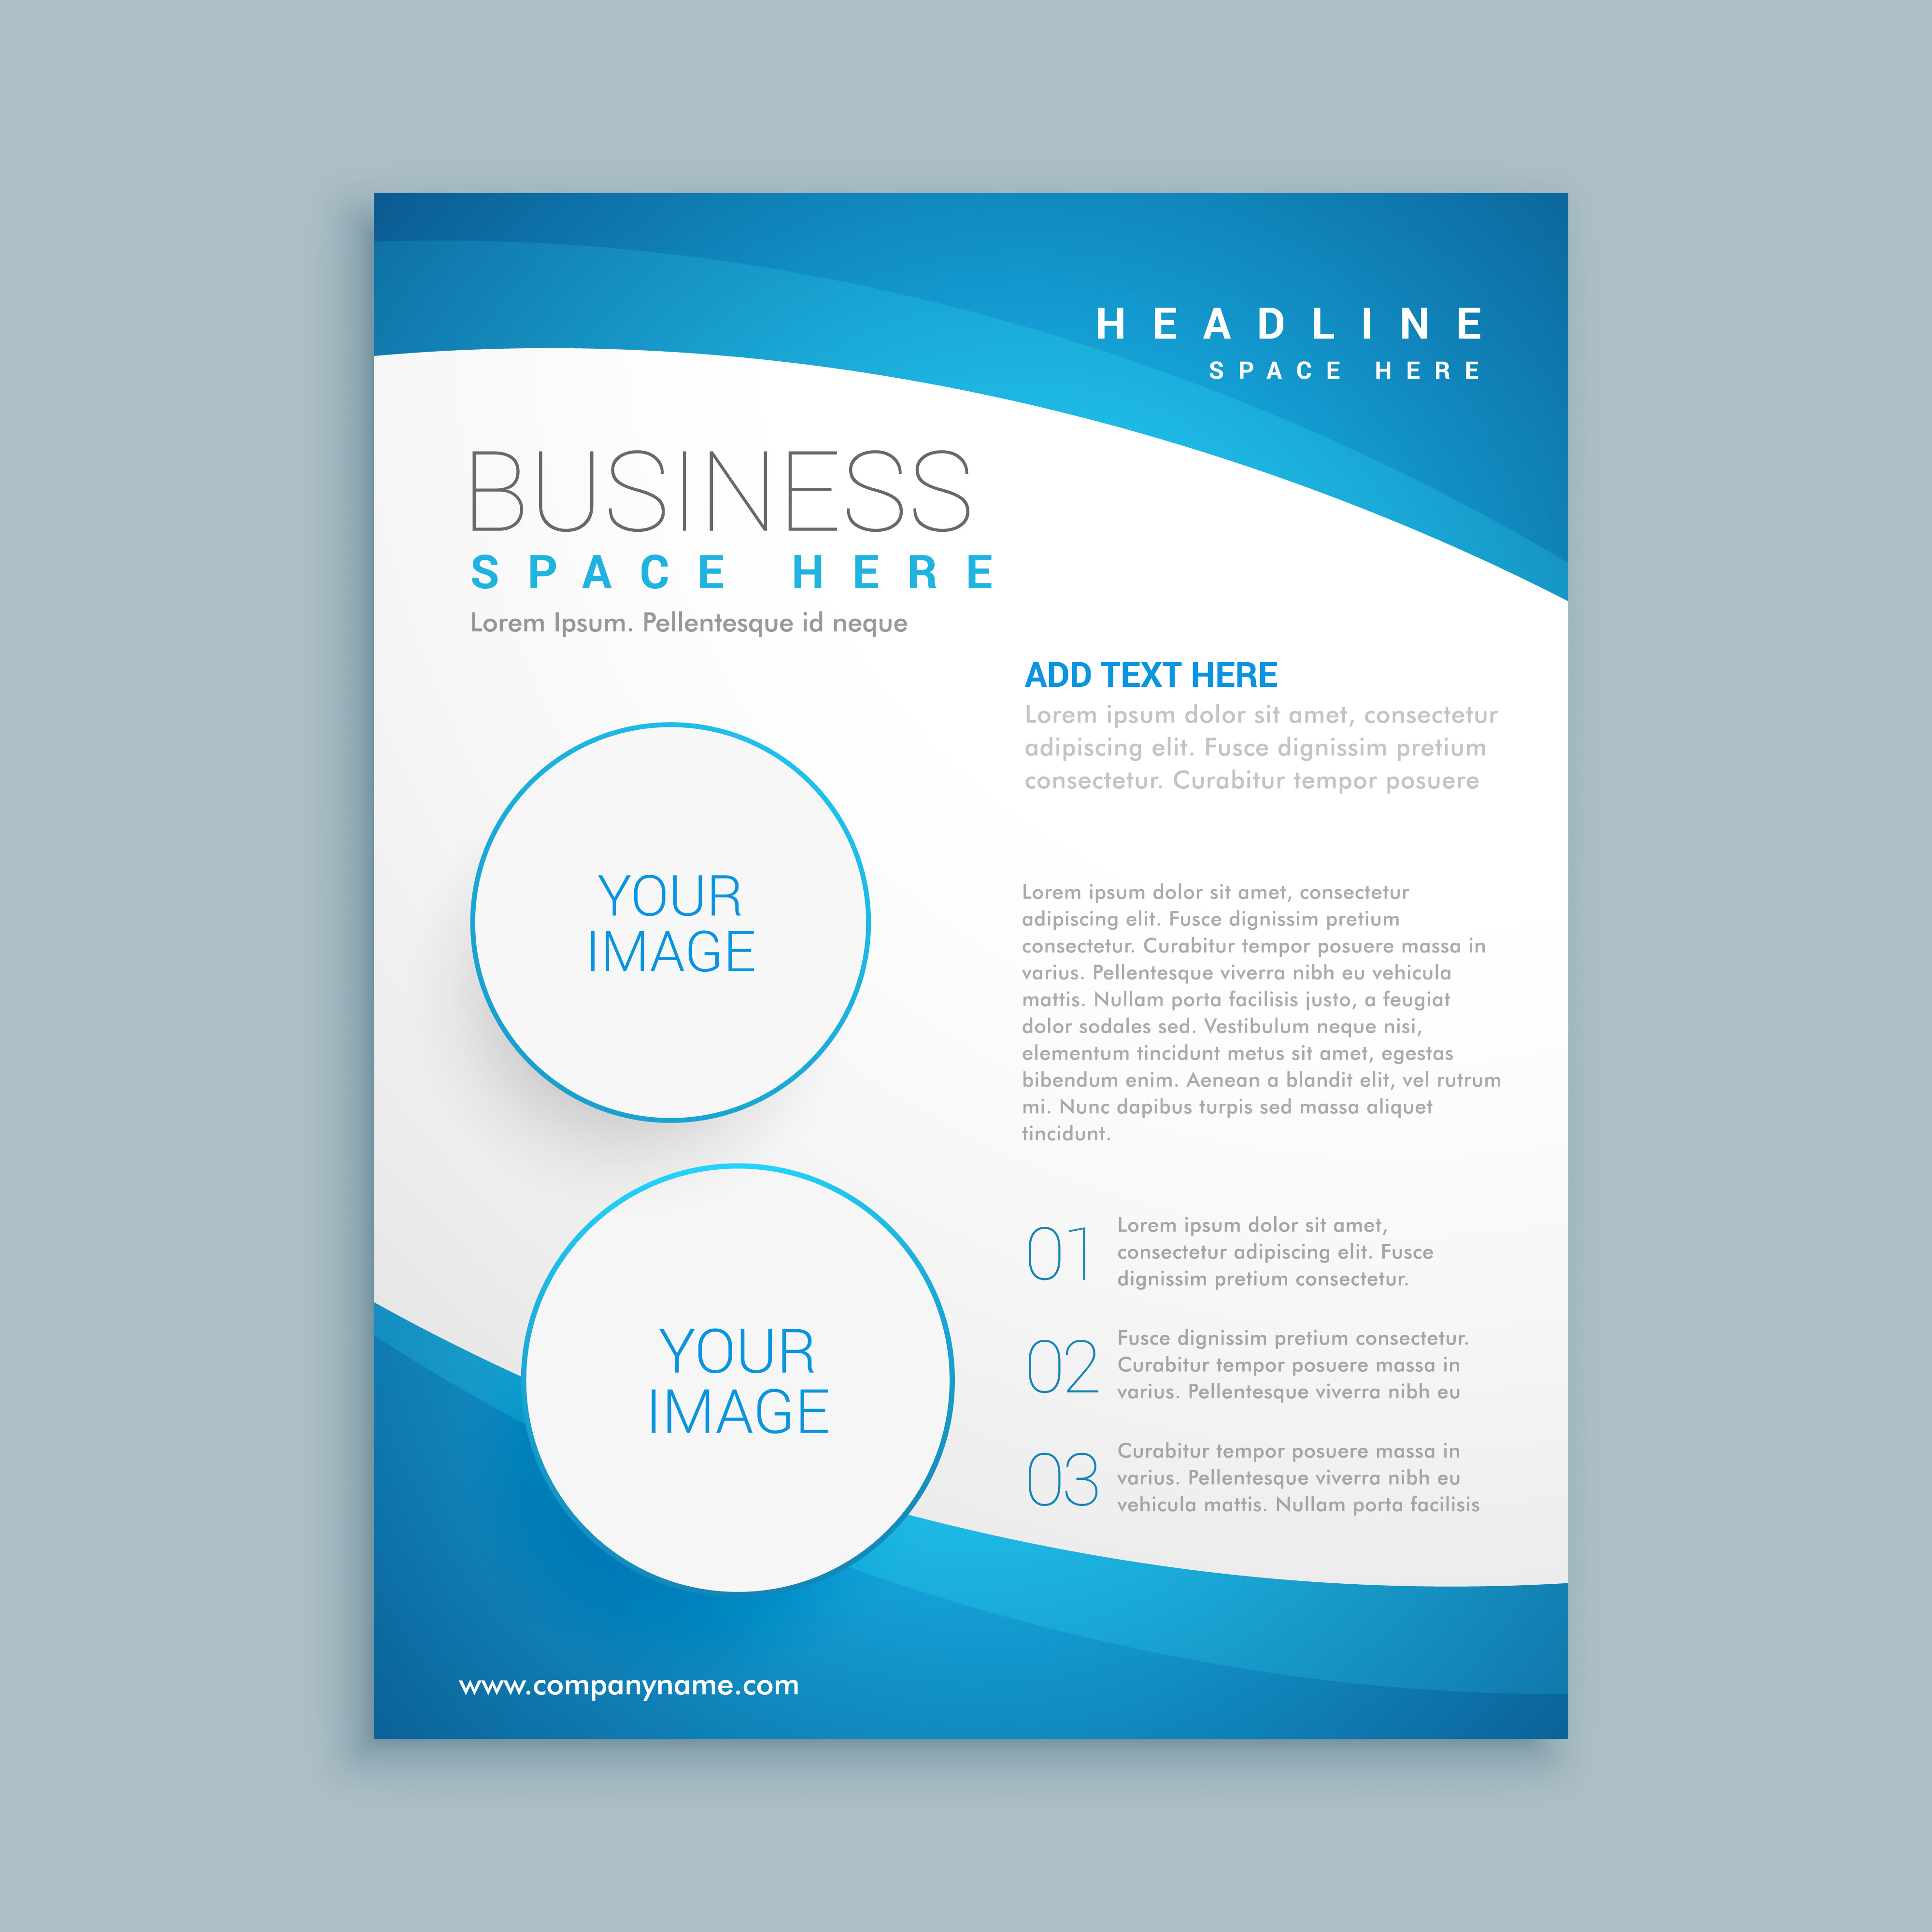 Corporate business brochure template download free for Corporate brochure template